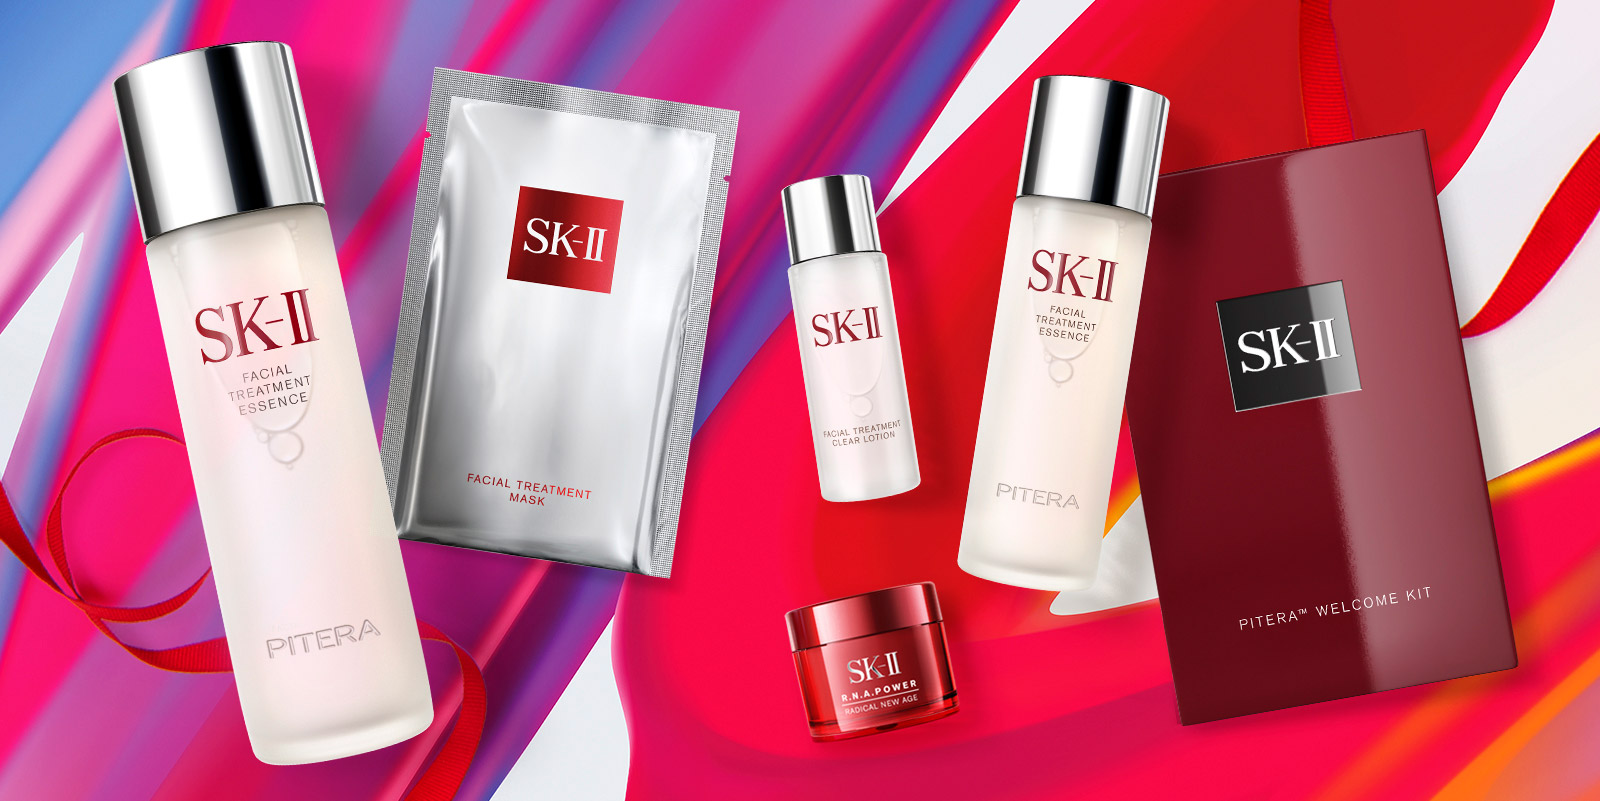 SK-II products